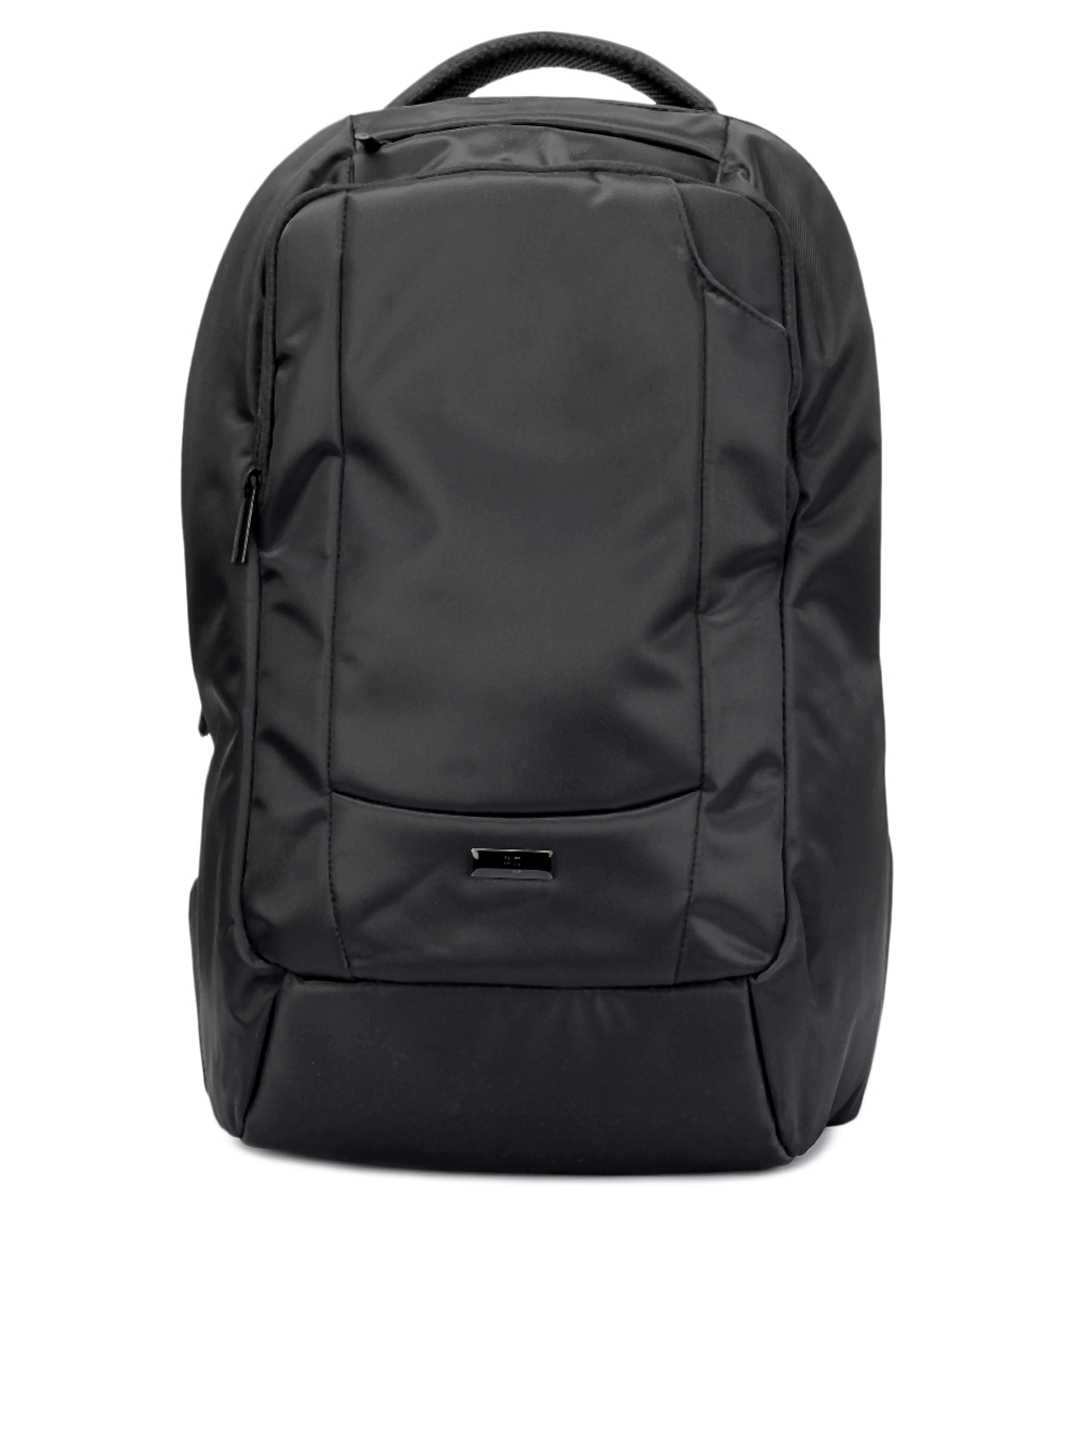 Peter England Unisex Black Backpack